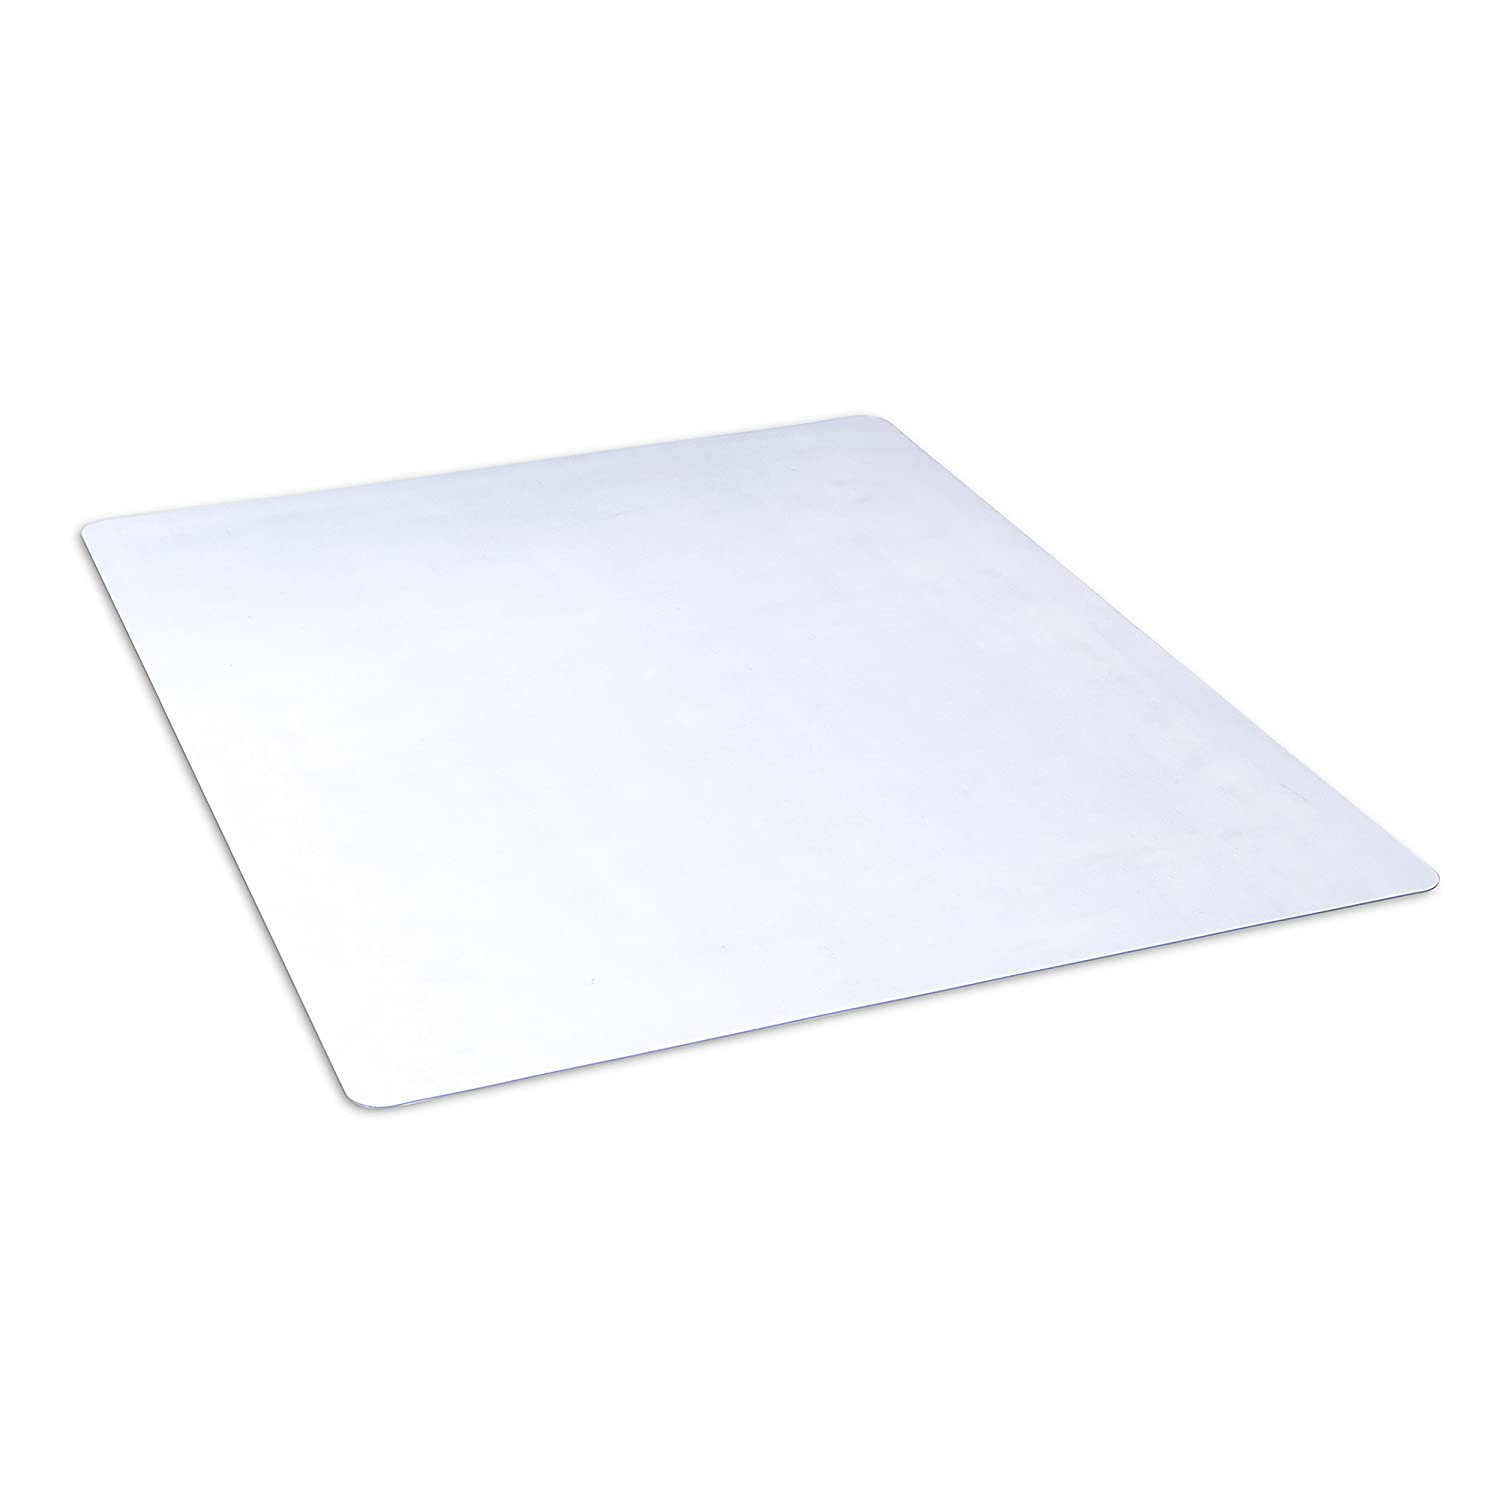 "Dimex 46""x 60"" Clear Rectangle Office Chair Mat For Hard Floors (1532630)"